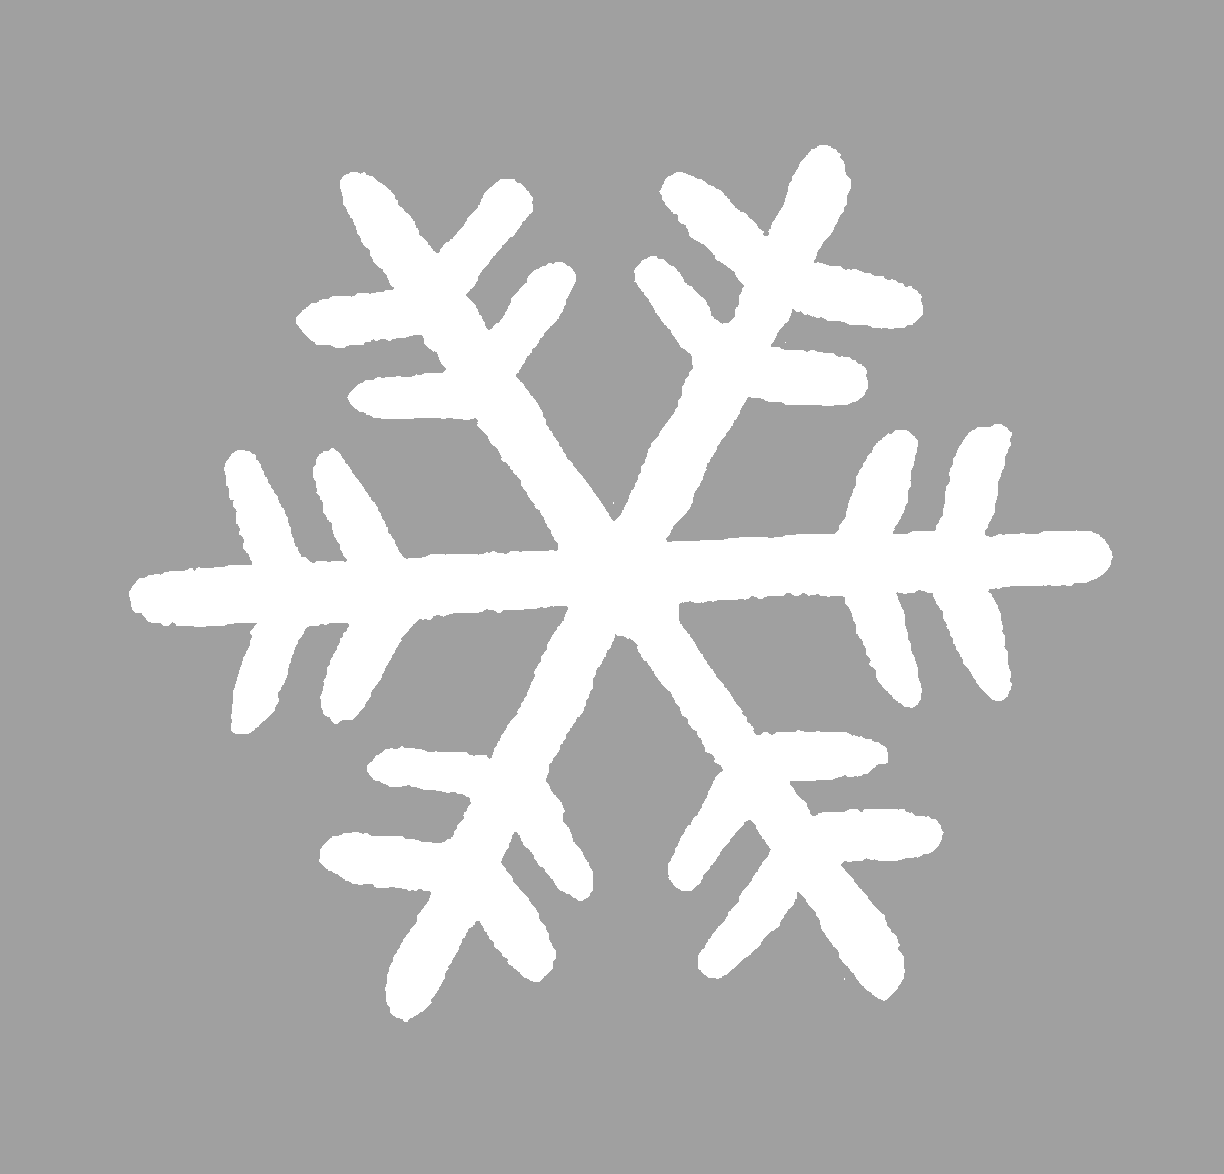 The Graphics Monarch Digital Snowflake Cutout Silhouette